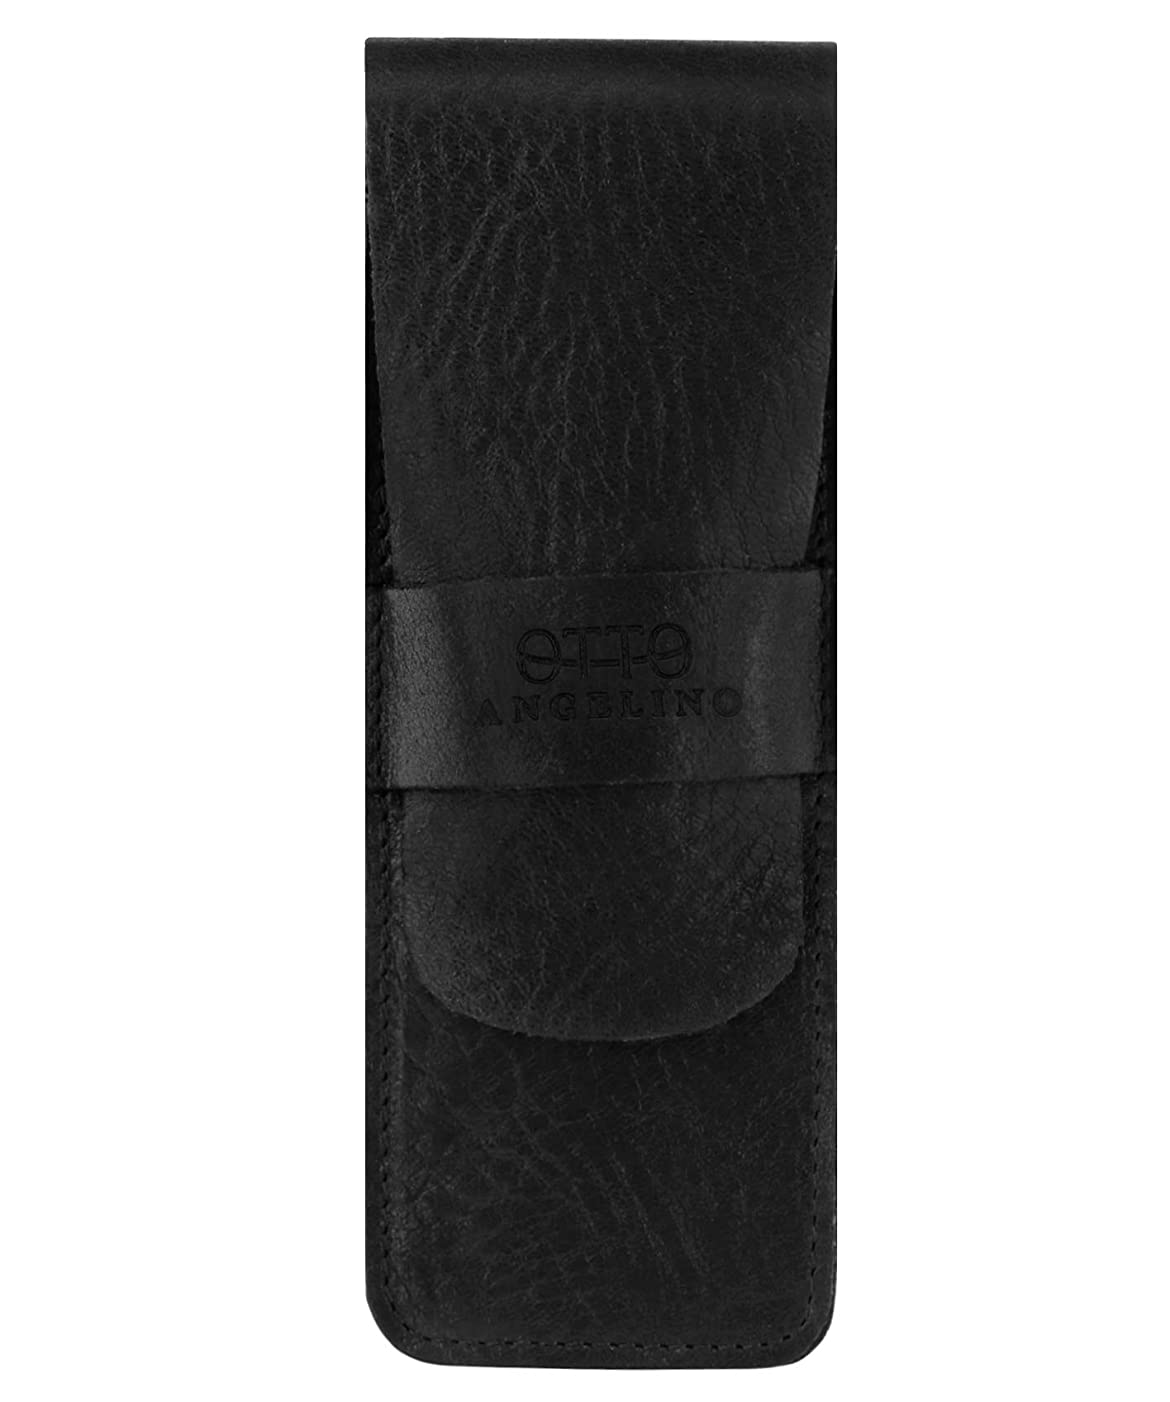 Otto Angelino Genuine Leather Pen Case with Sleeve Cover, Pencil Pouch Stationery Bag (Black)